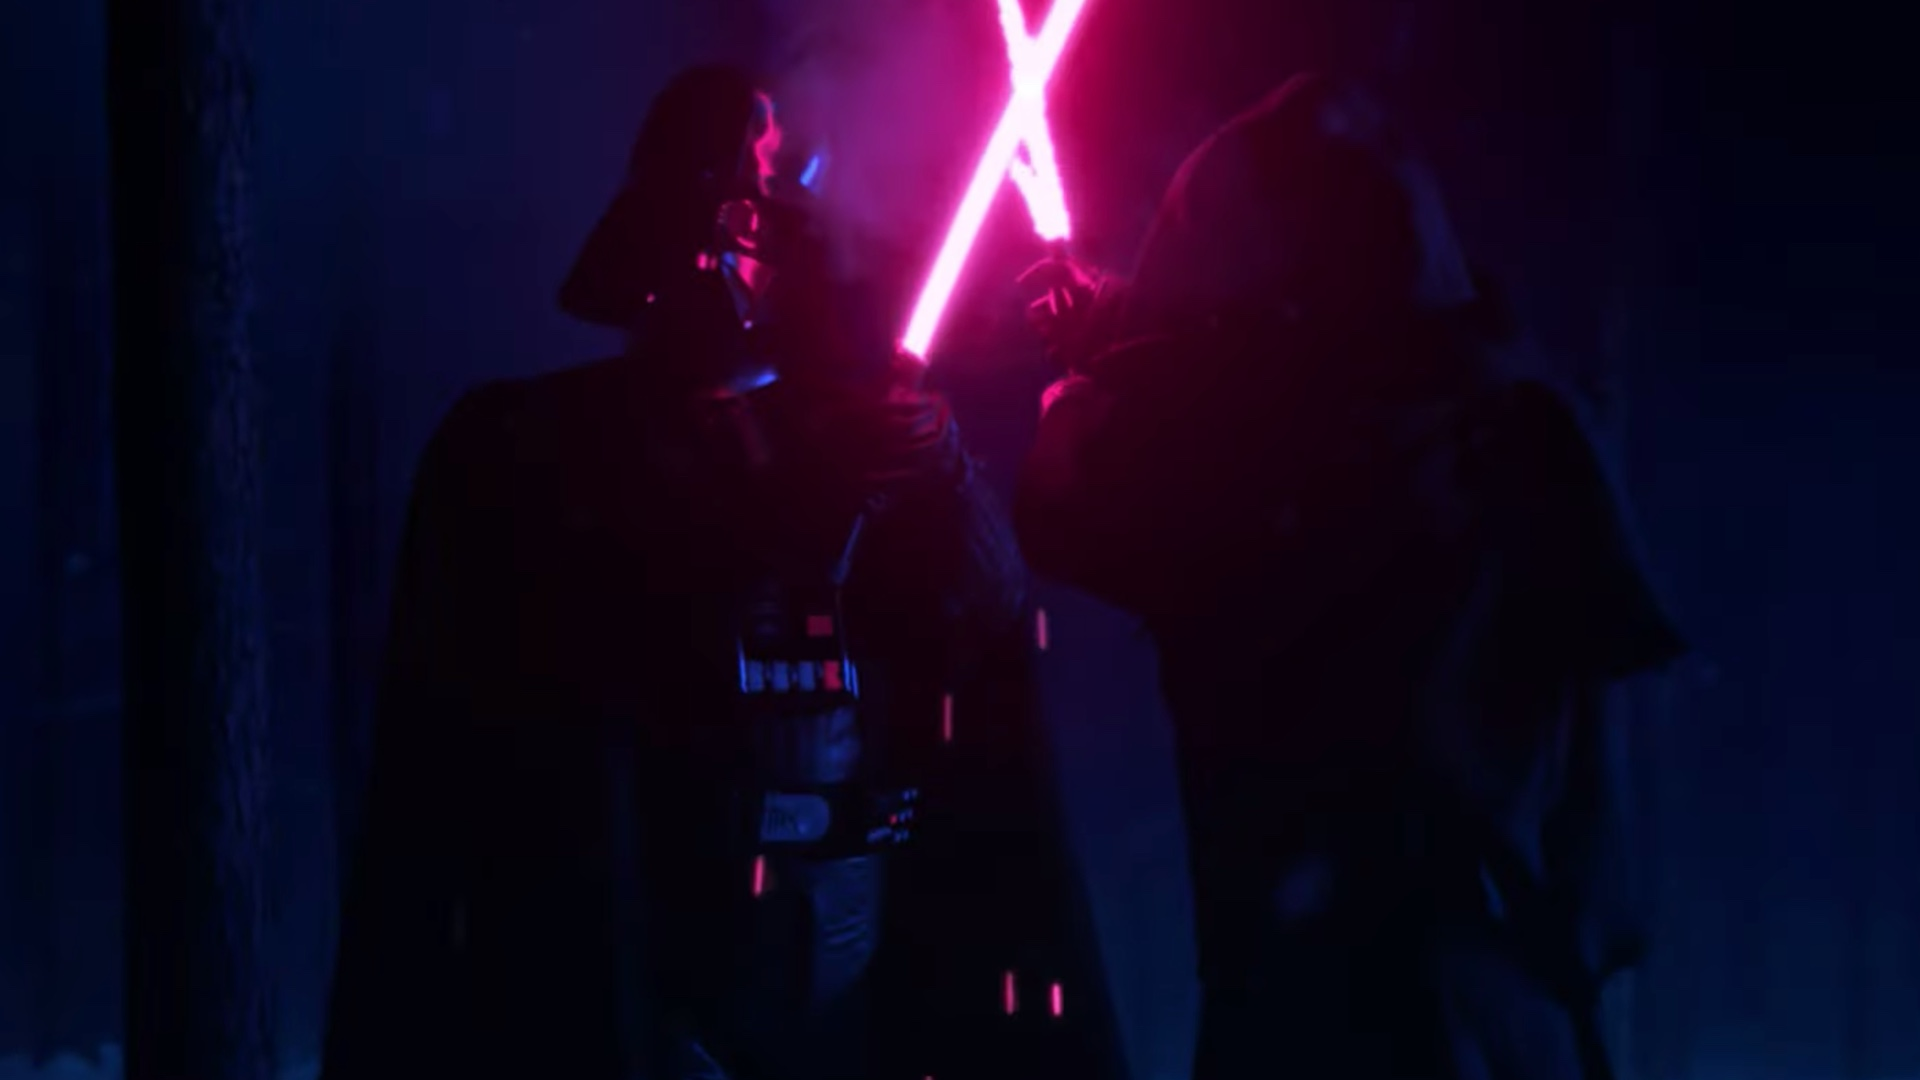 Darth Vader And Kylo Ren Fight In Force Of Darkness Fan Film